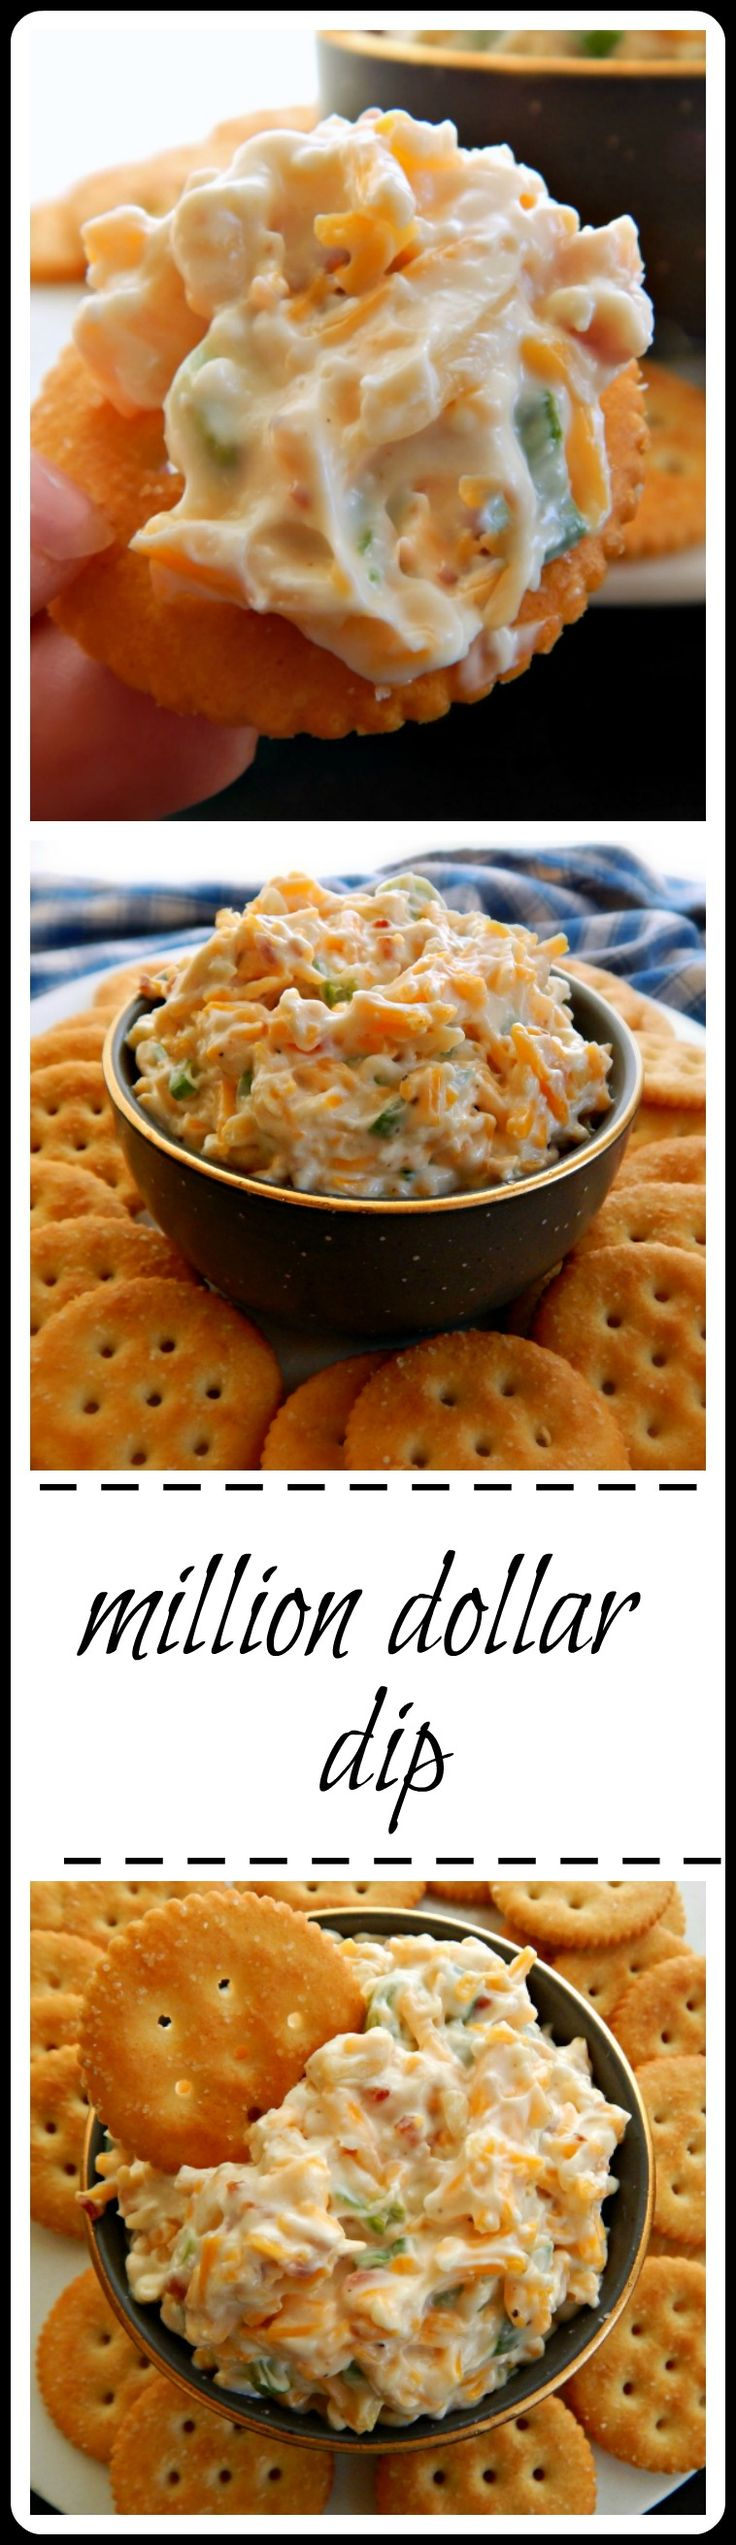 Million Dollar Dip: Dip of many names, sometimes called ABC for the Almond, Bacon & Cheddar!